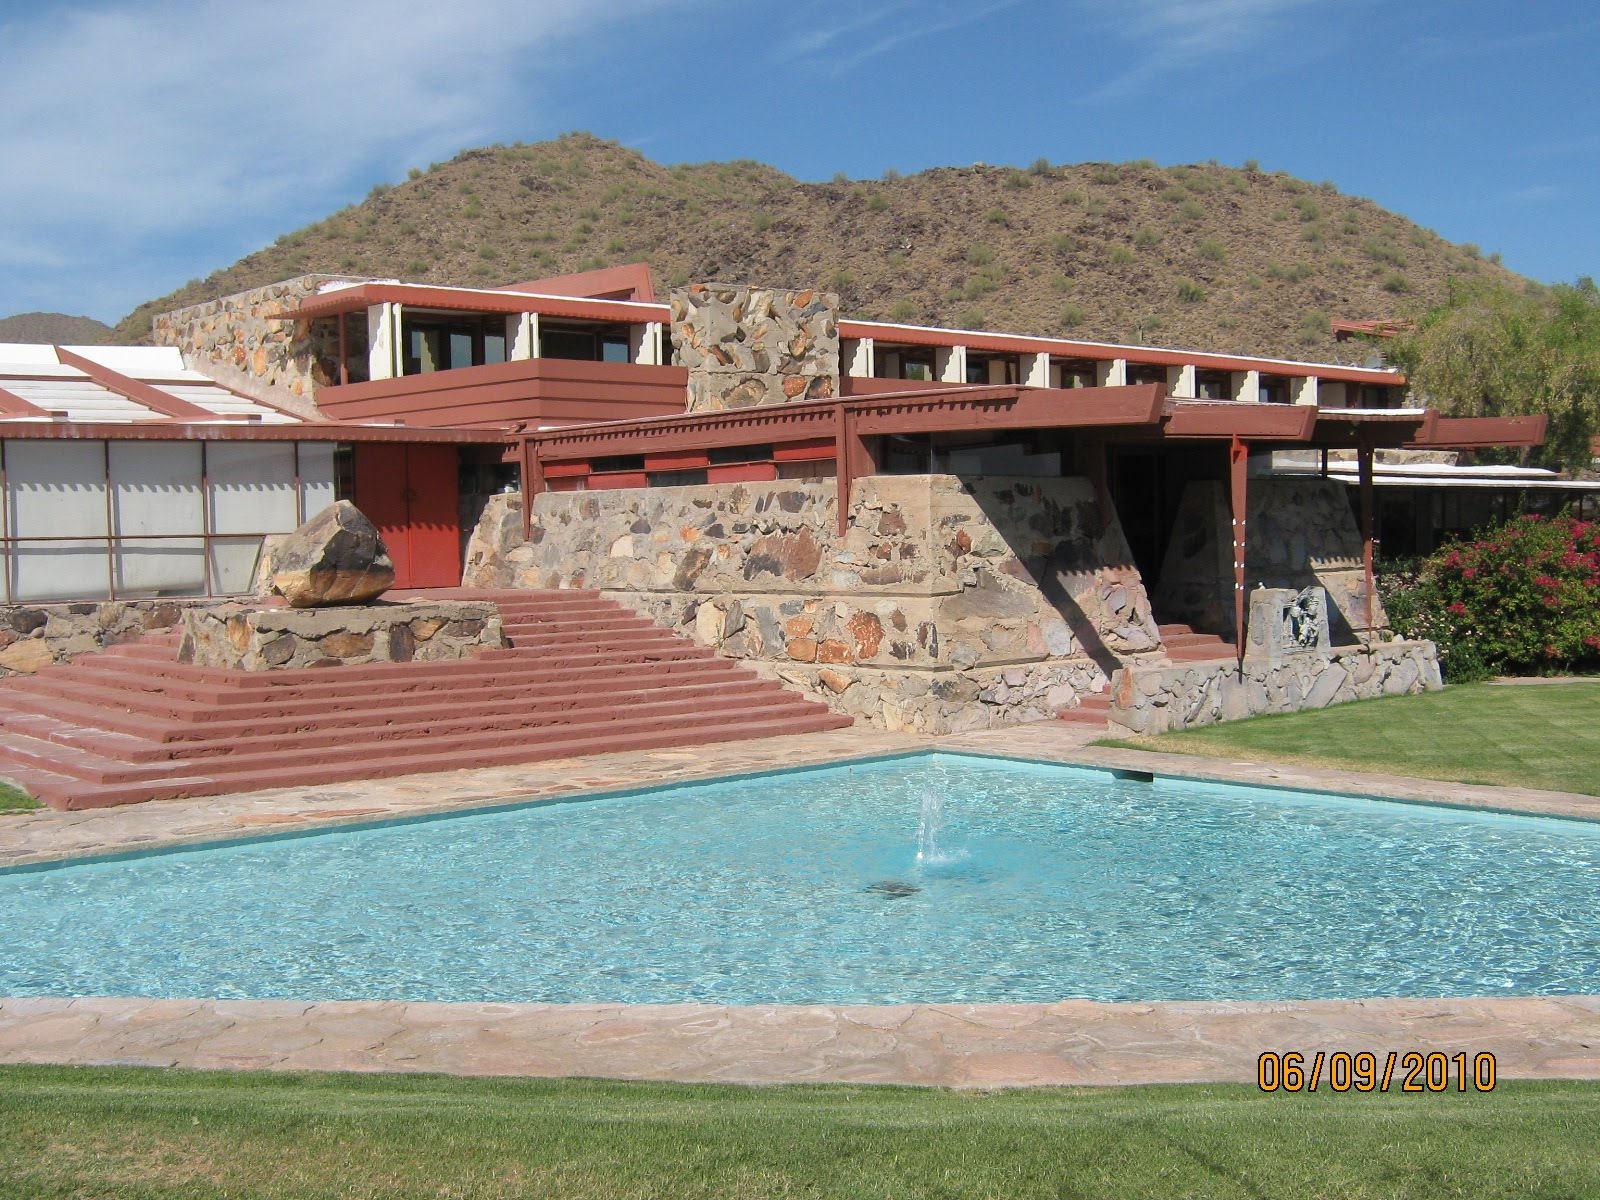 The Whited Sepulchre Taliesin West Frank Lloyd Wright